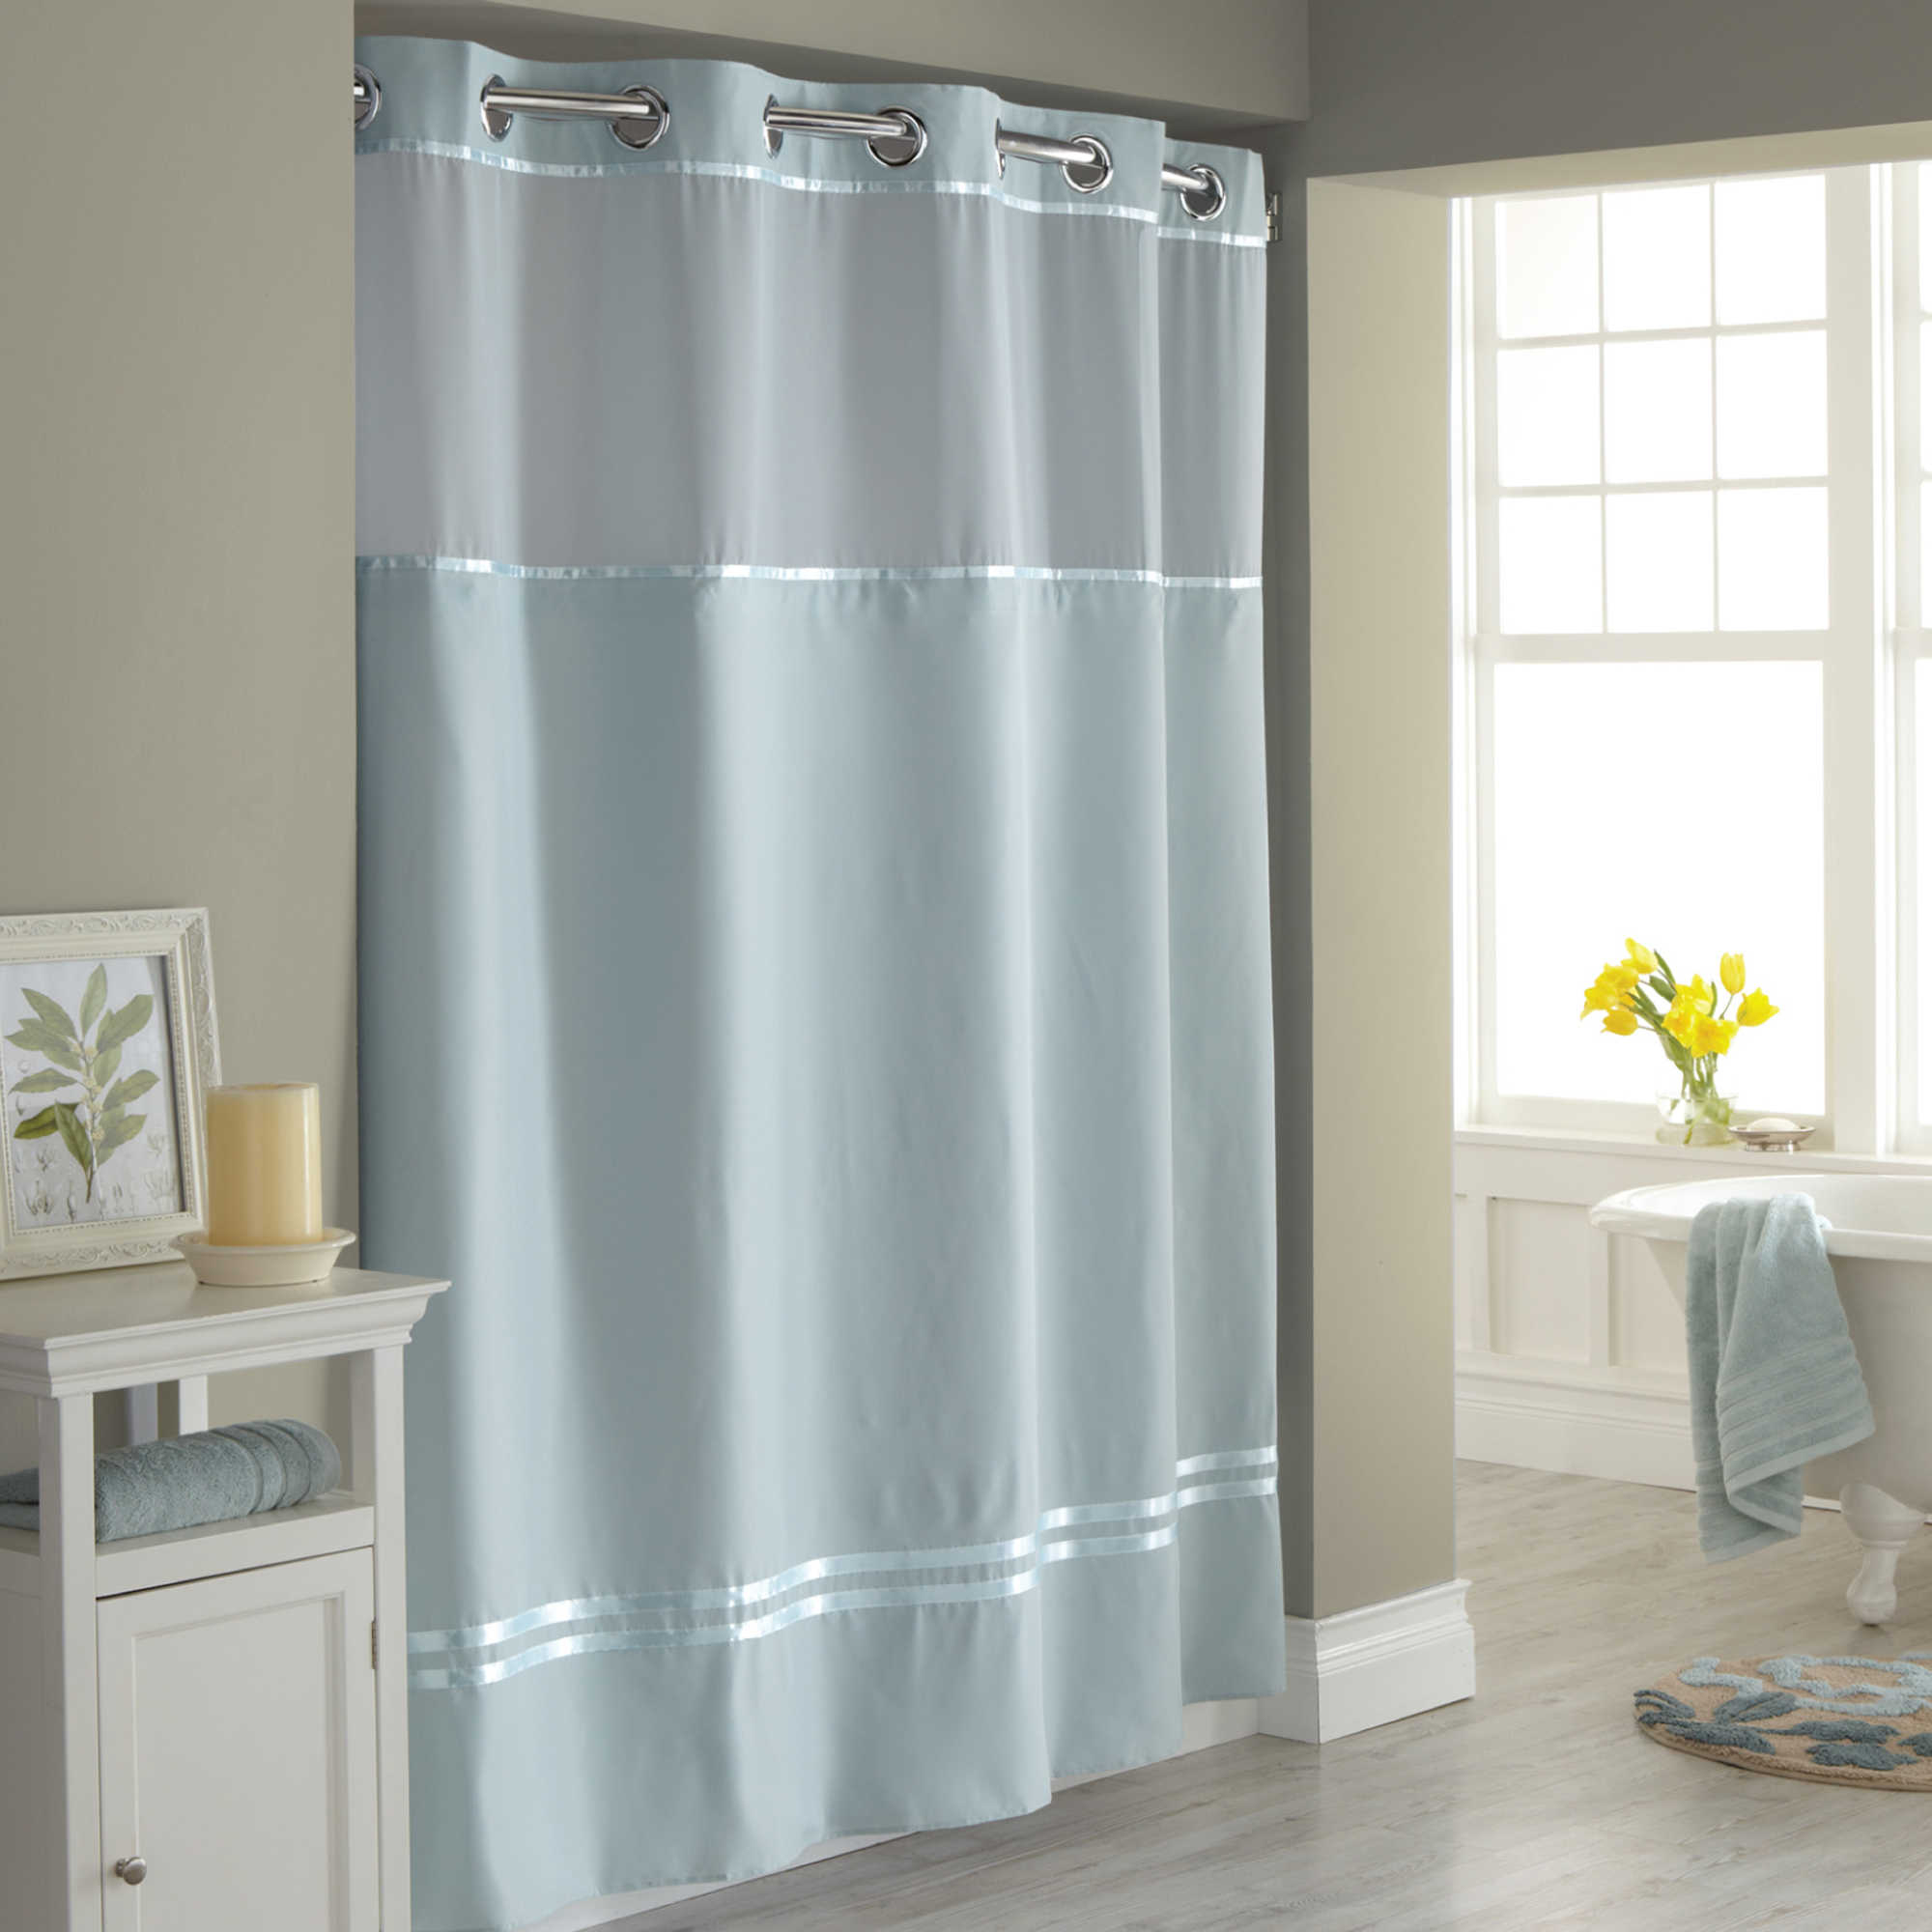 Bathroom Hookless Shower Curtain With Snap Liner Shower for size 2000 X 2000